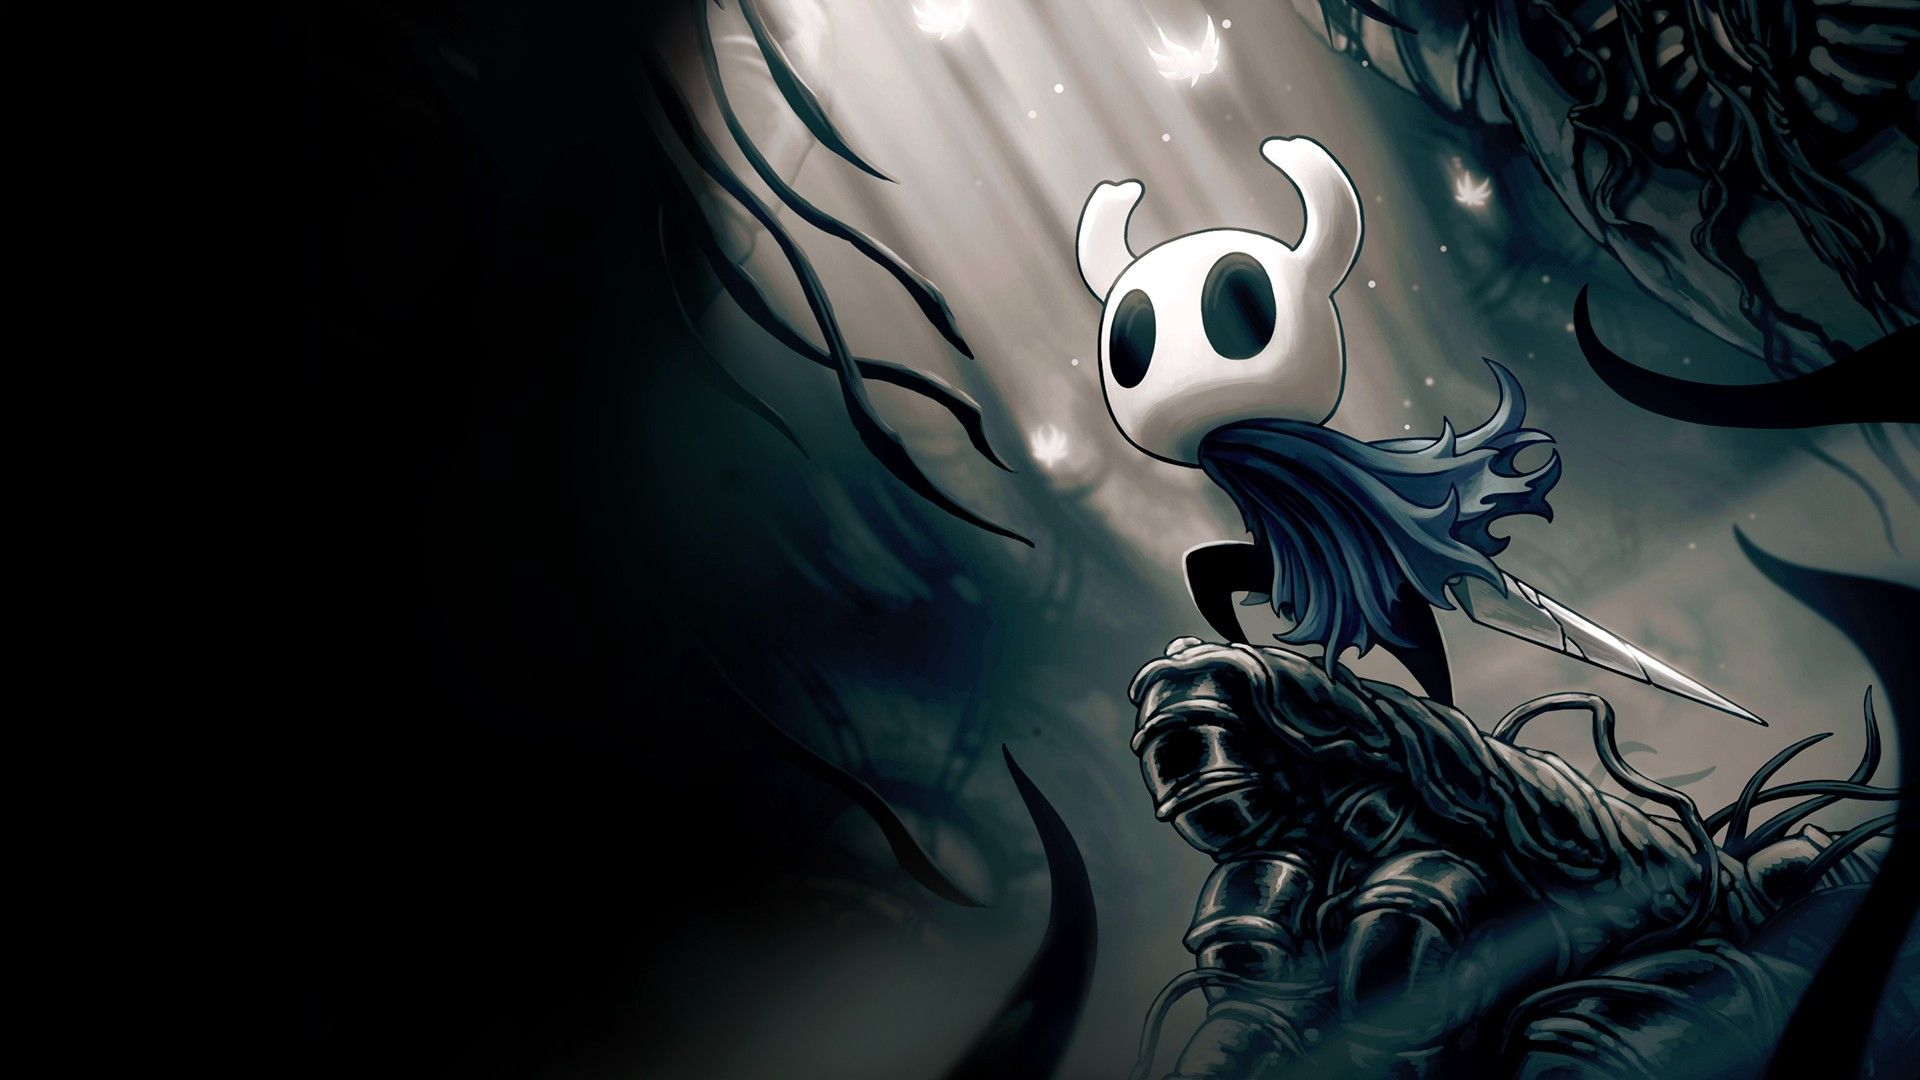 Best Hollow Knight Wallpaper Best Wallpaper Hd In 2020 Hd Cute Wallpapers Art Cute Wallpapers